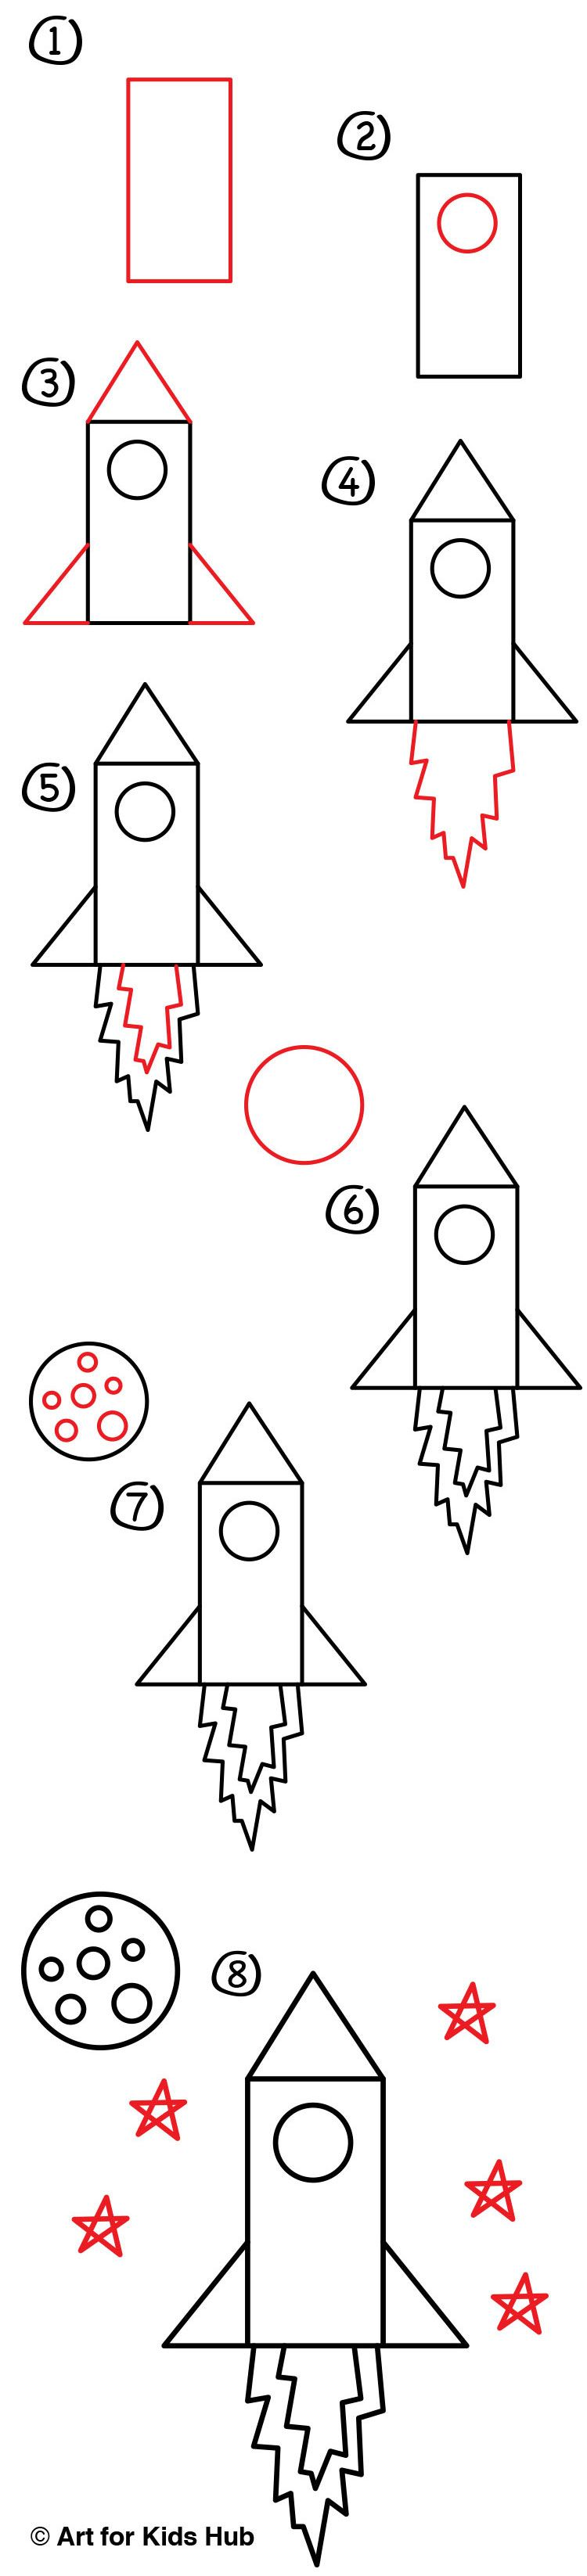 how to draw a rocket young artists art for kids hub color